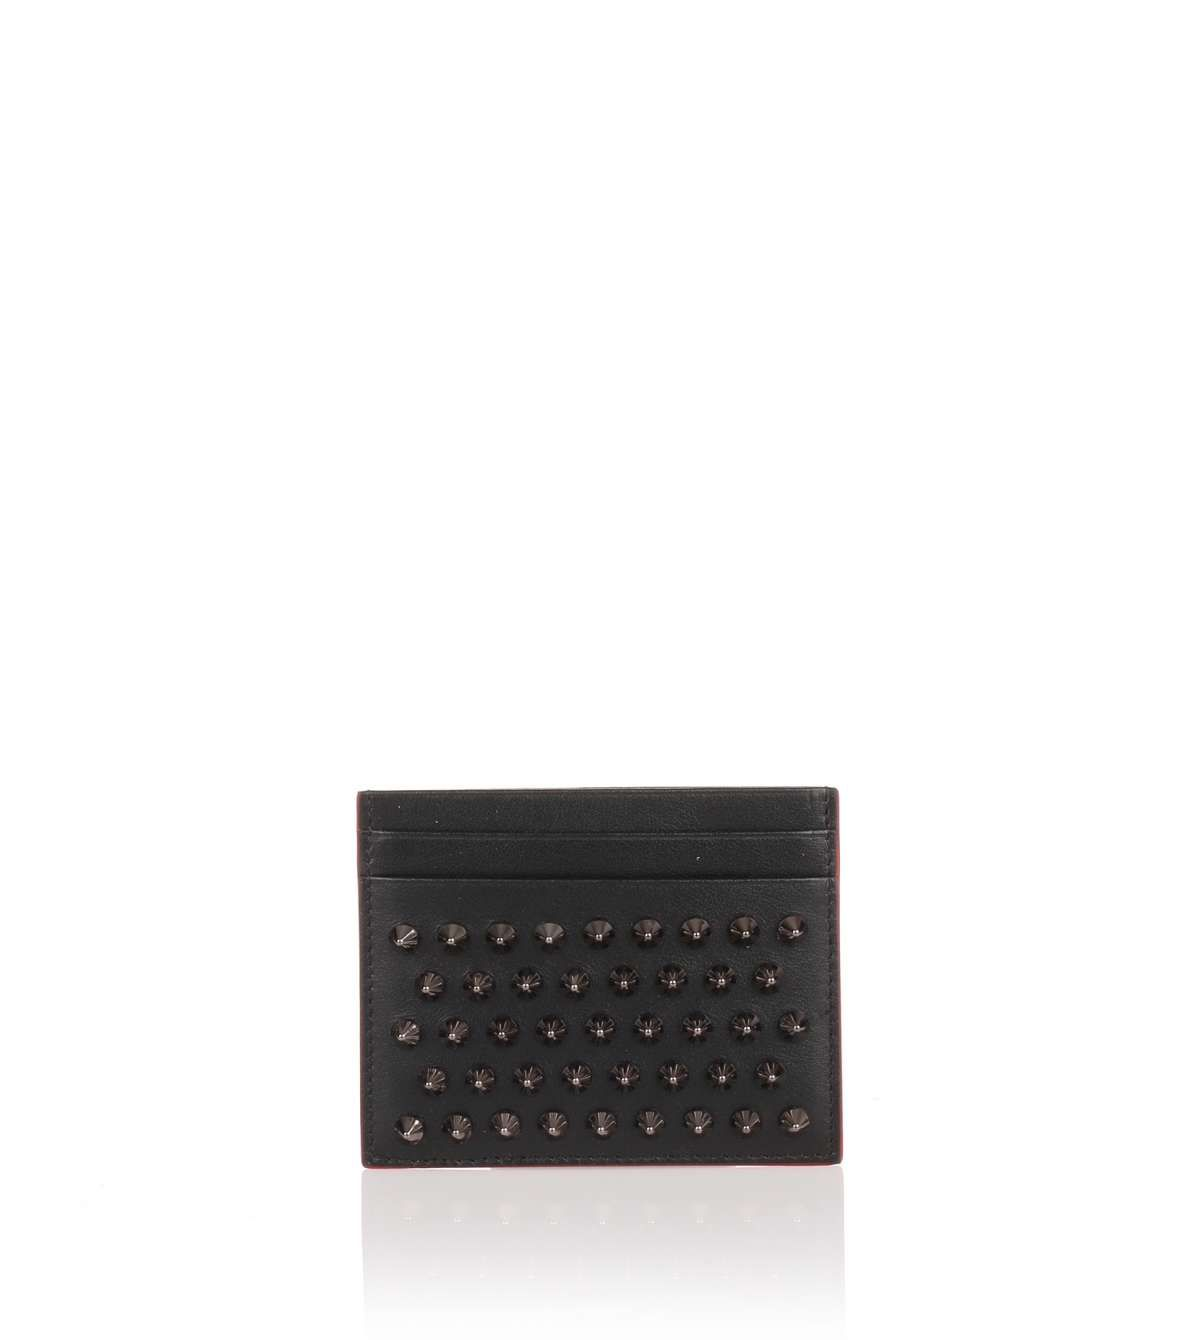 029f51abc79 Kios black spikes card holder | Shop Now | Real leather wallet ...